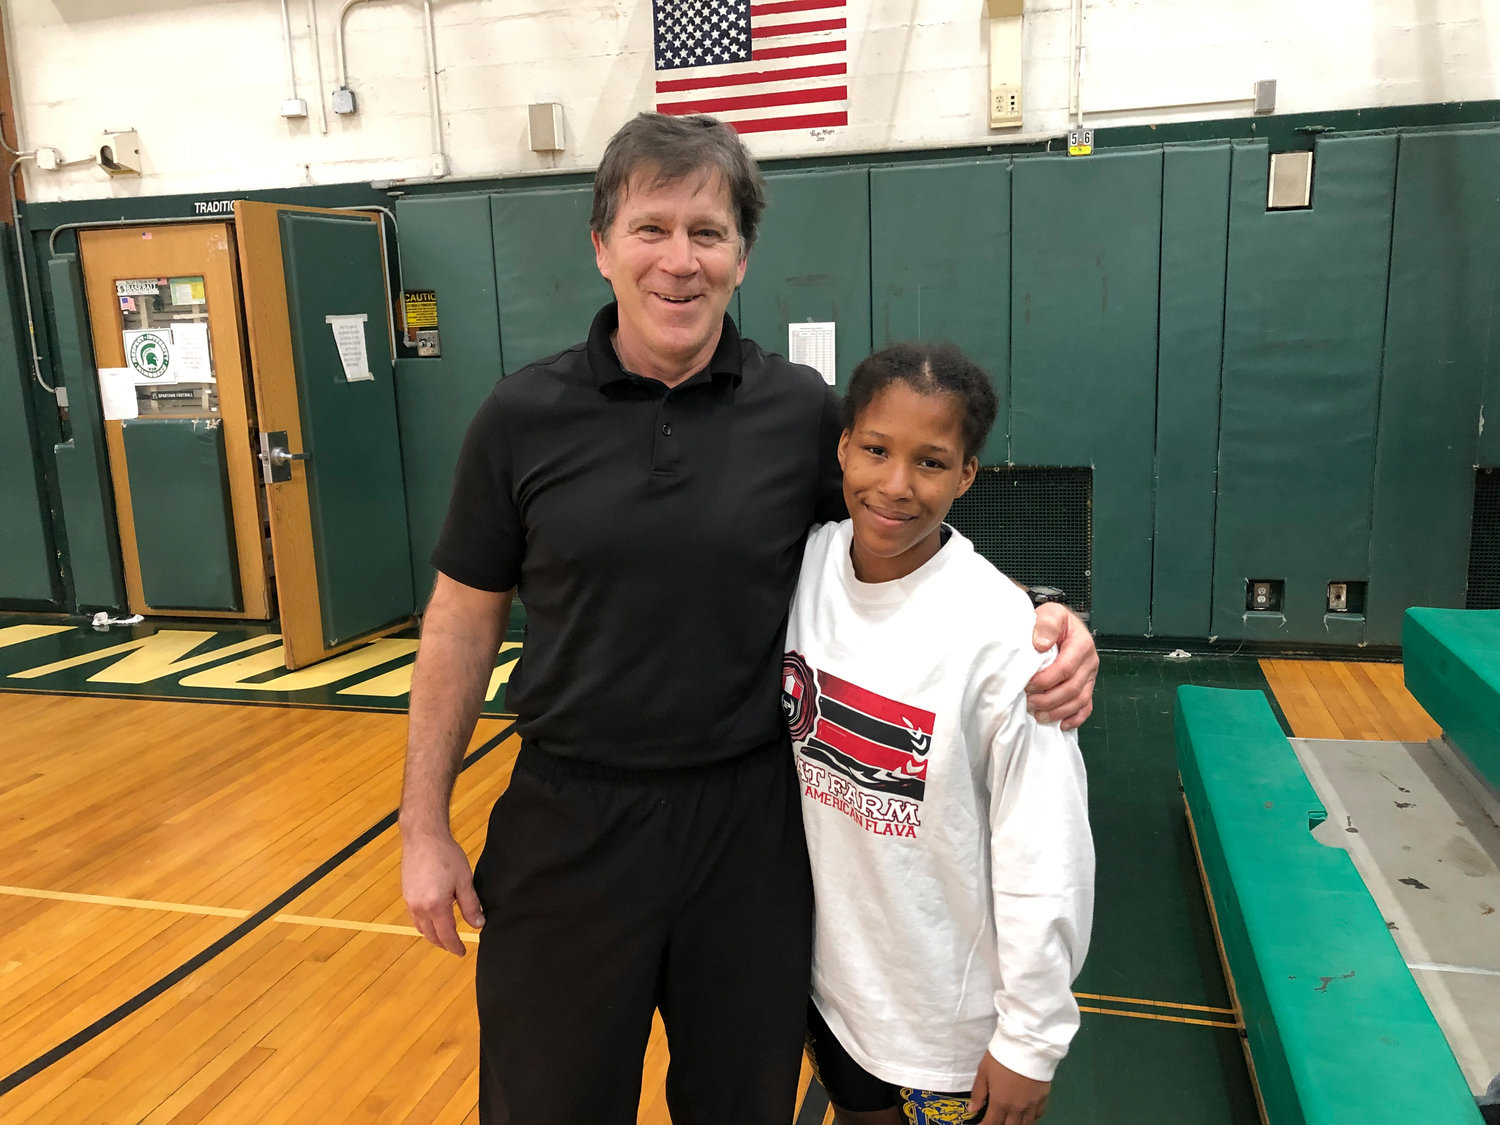 Lawrence Middle School wrestling head coach John Sauerland, left, was blown away by the efforts of eighth-grade wrestler Equality Gater.